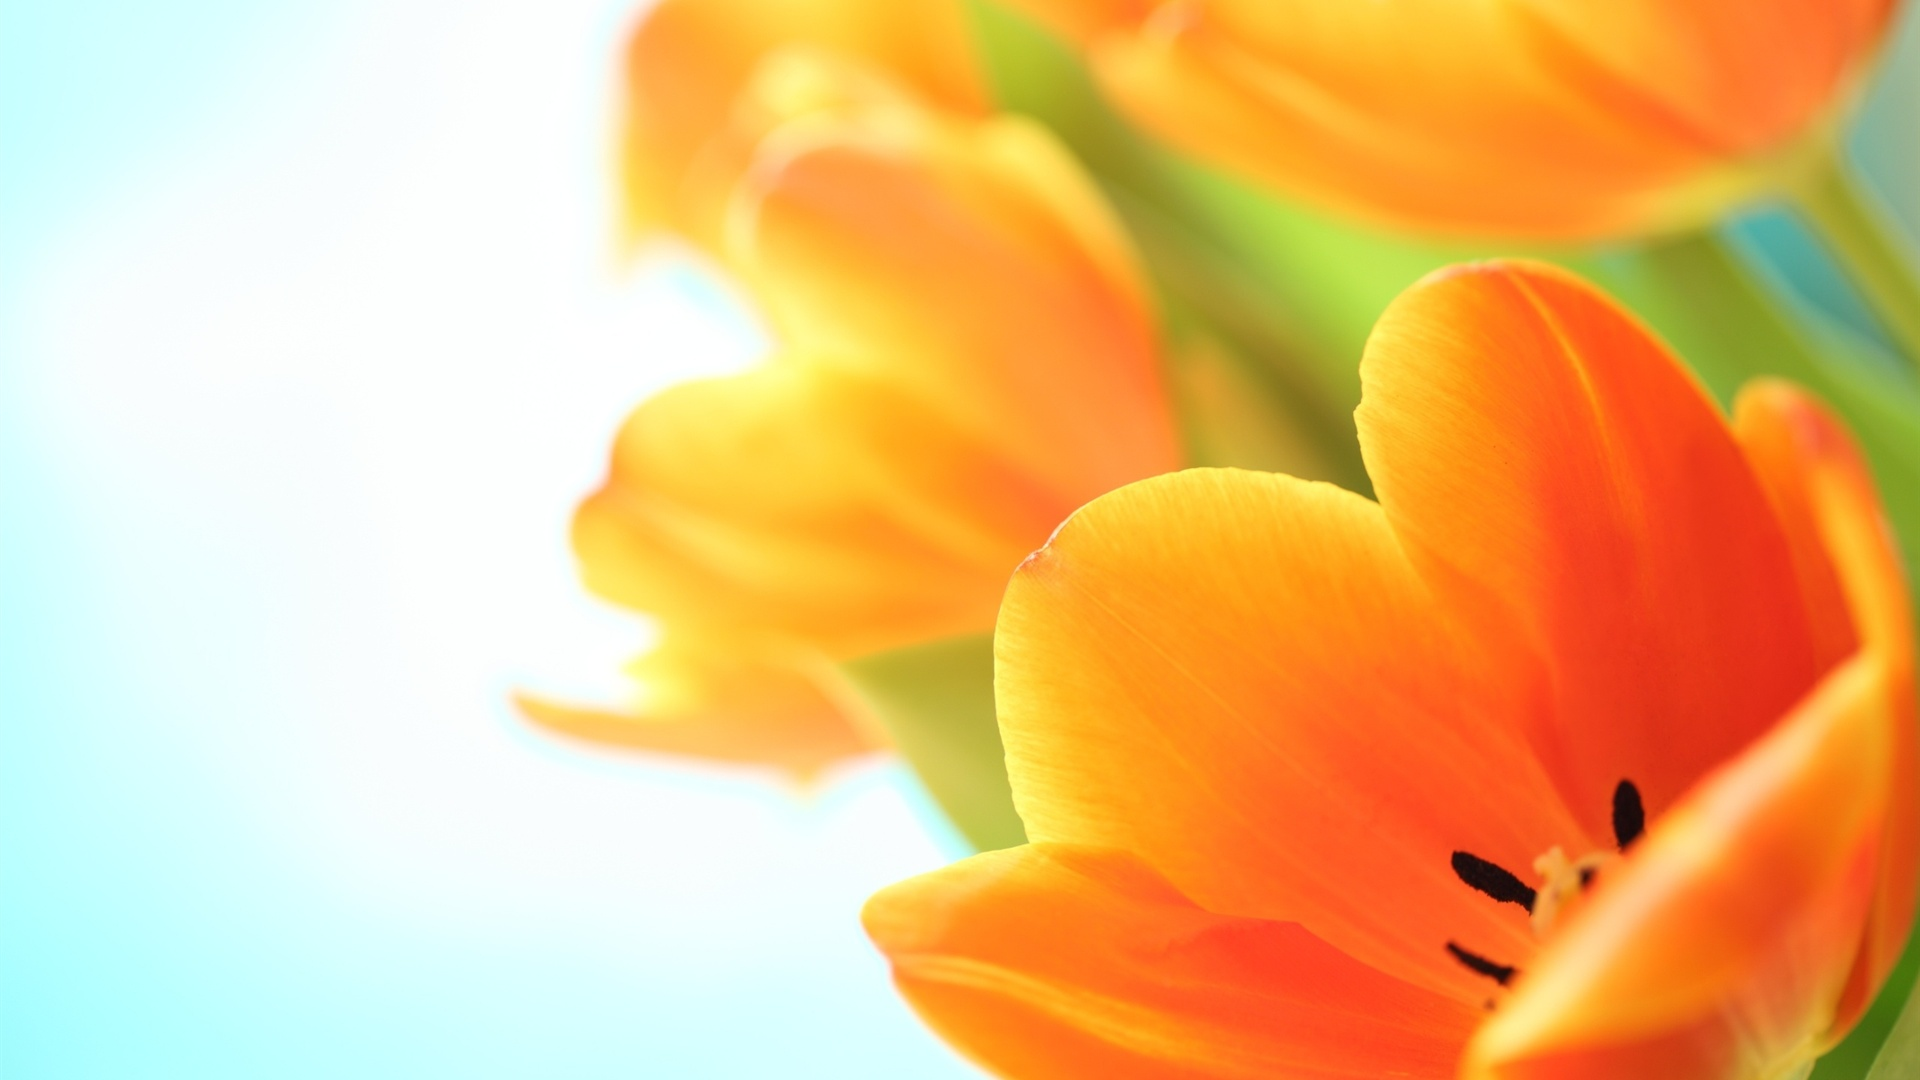 flowers spring wallpaper 1920x1080 - photo #22